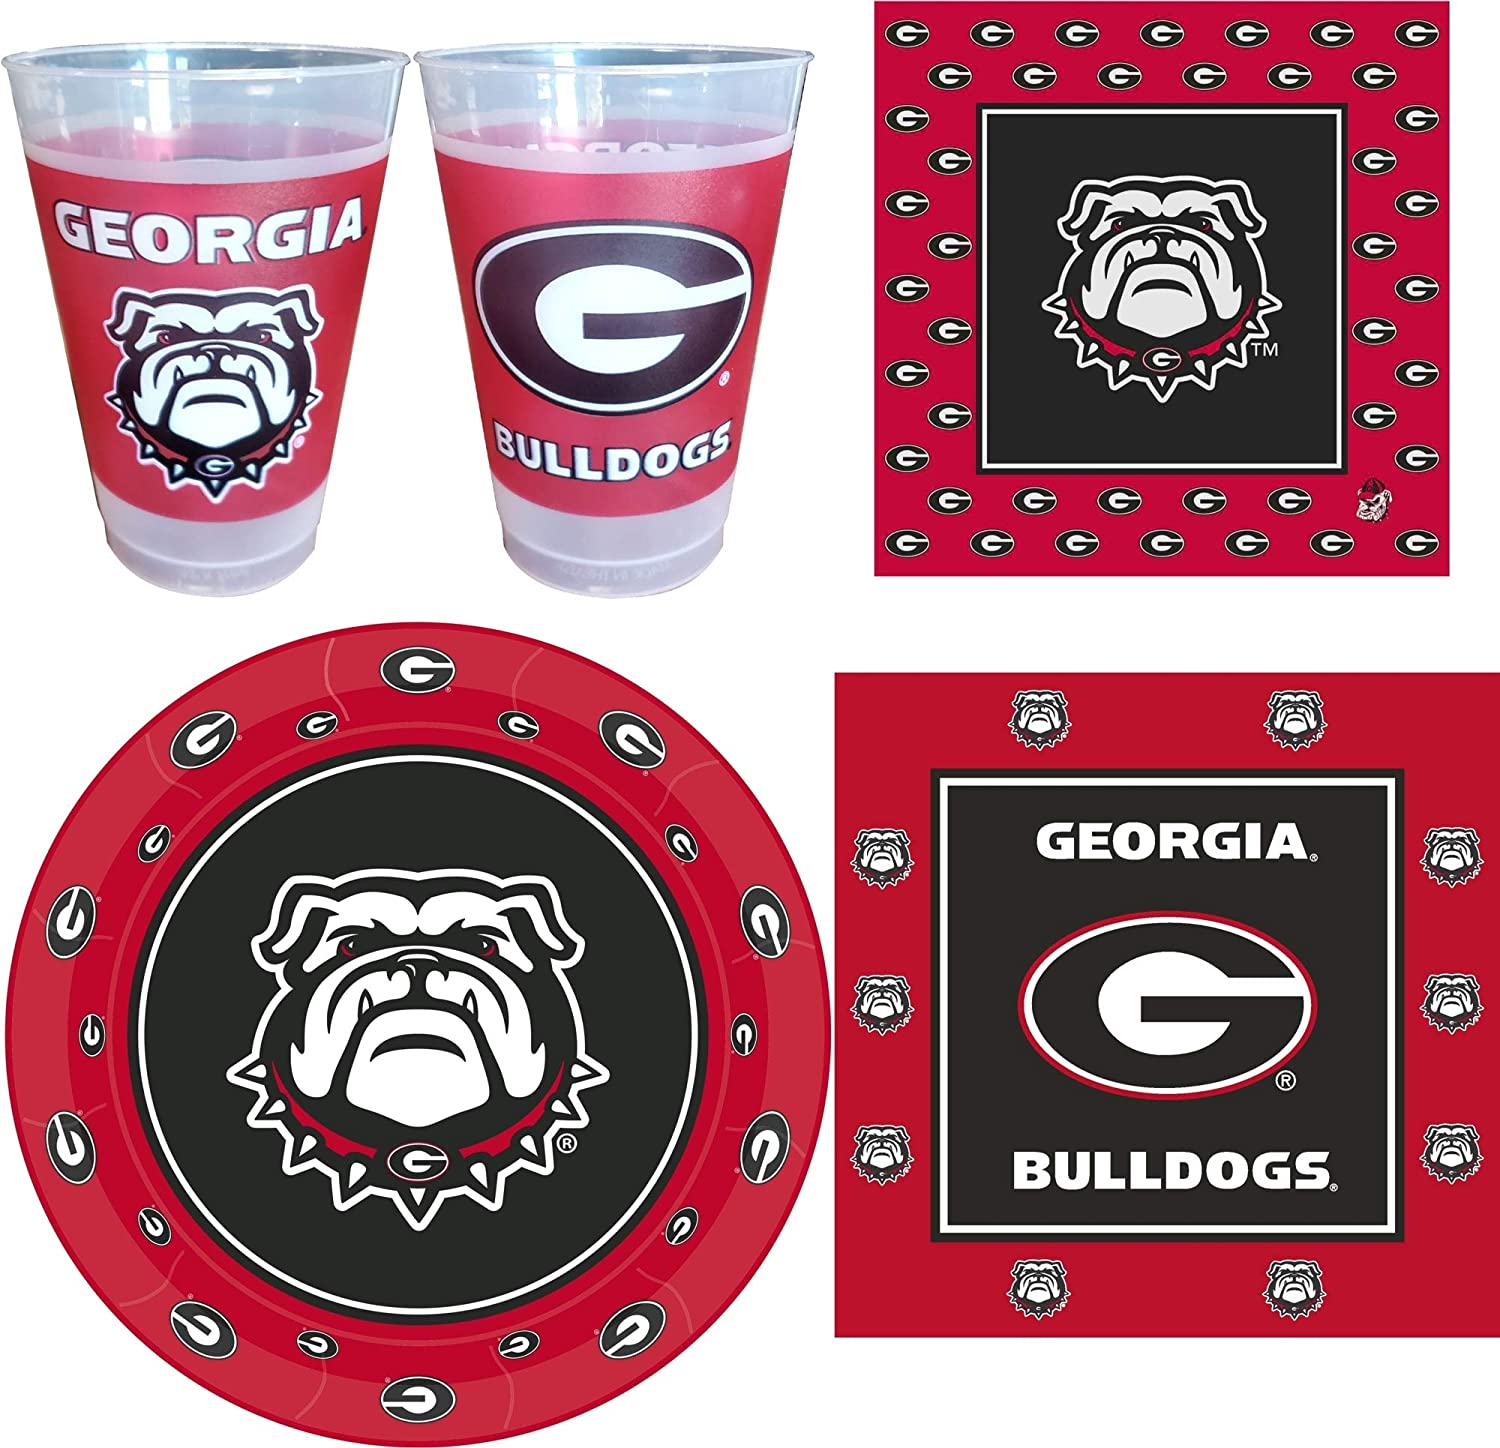 Georgia Bulldogs Party Supplies for 24 Guests - 113 Pieces